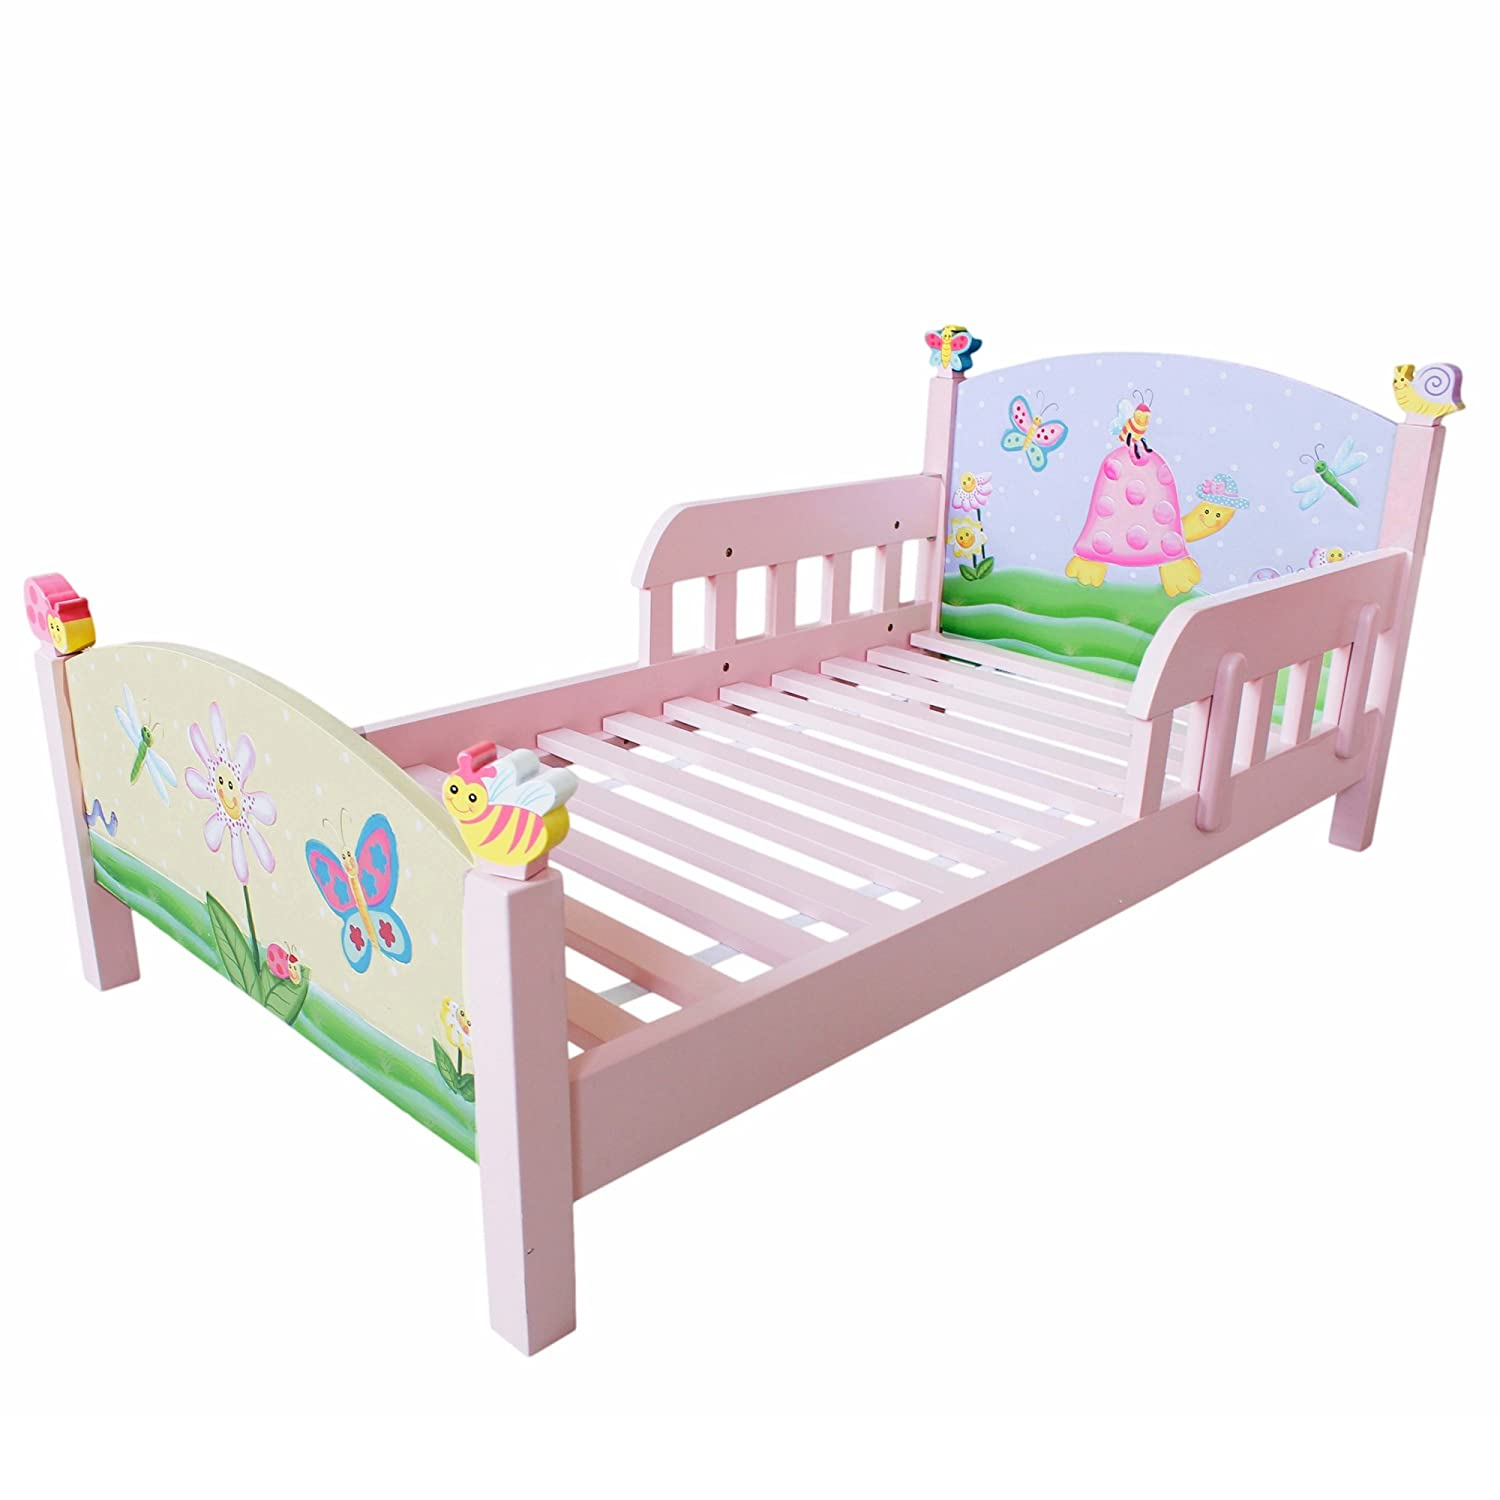 Teamson W-7485A Magic Garden Kinderbett